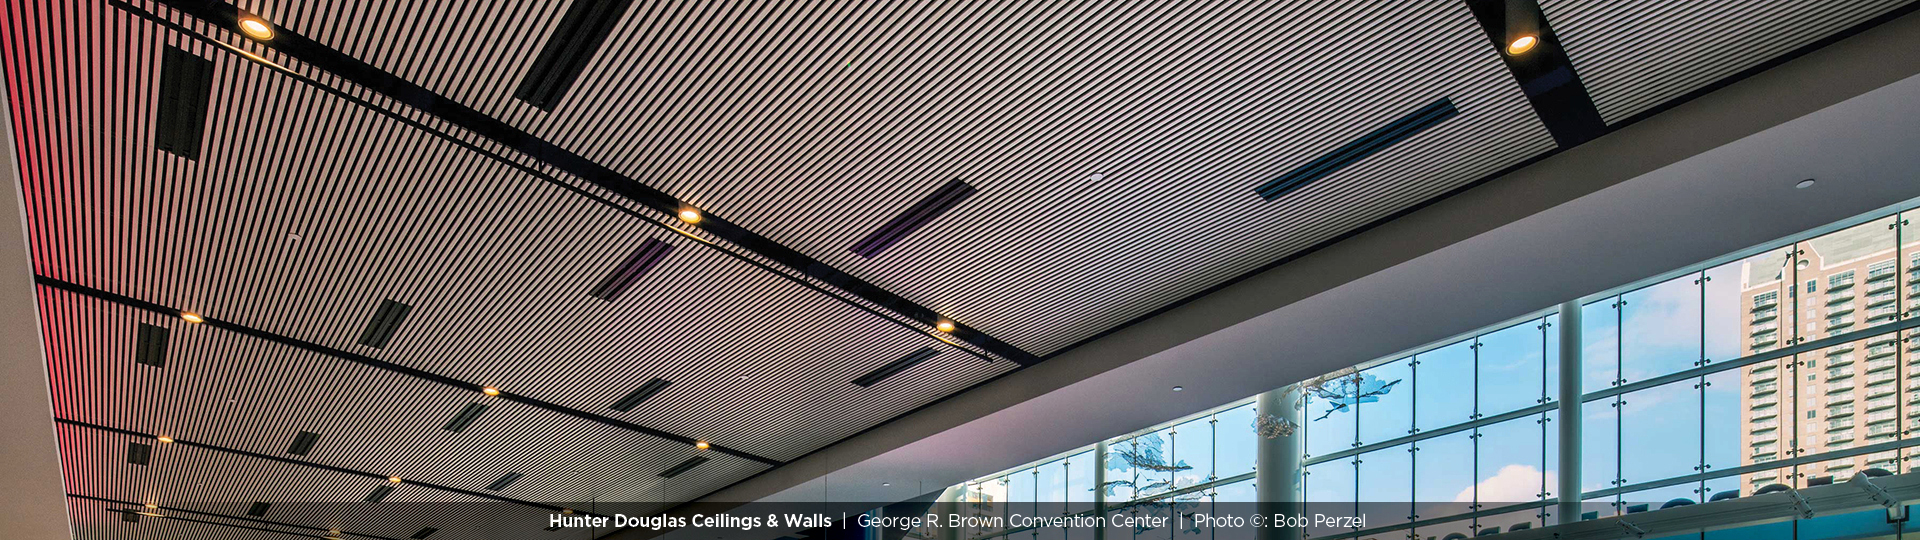 Continuous Linear Grille Specialty Ceilings And Walls